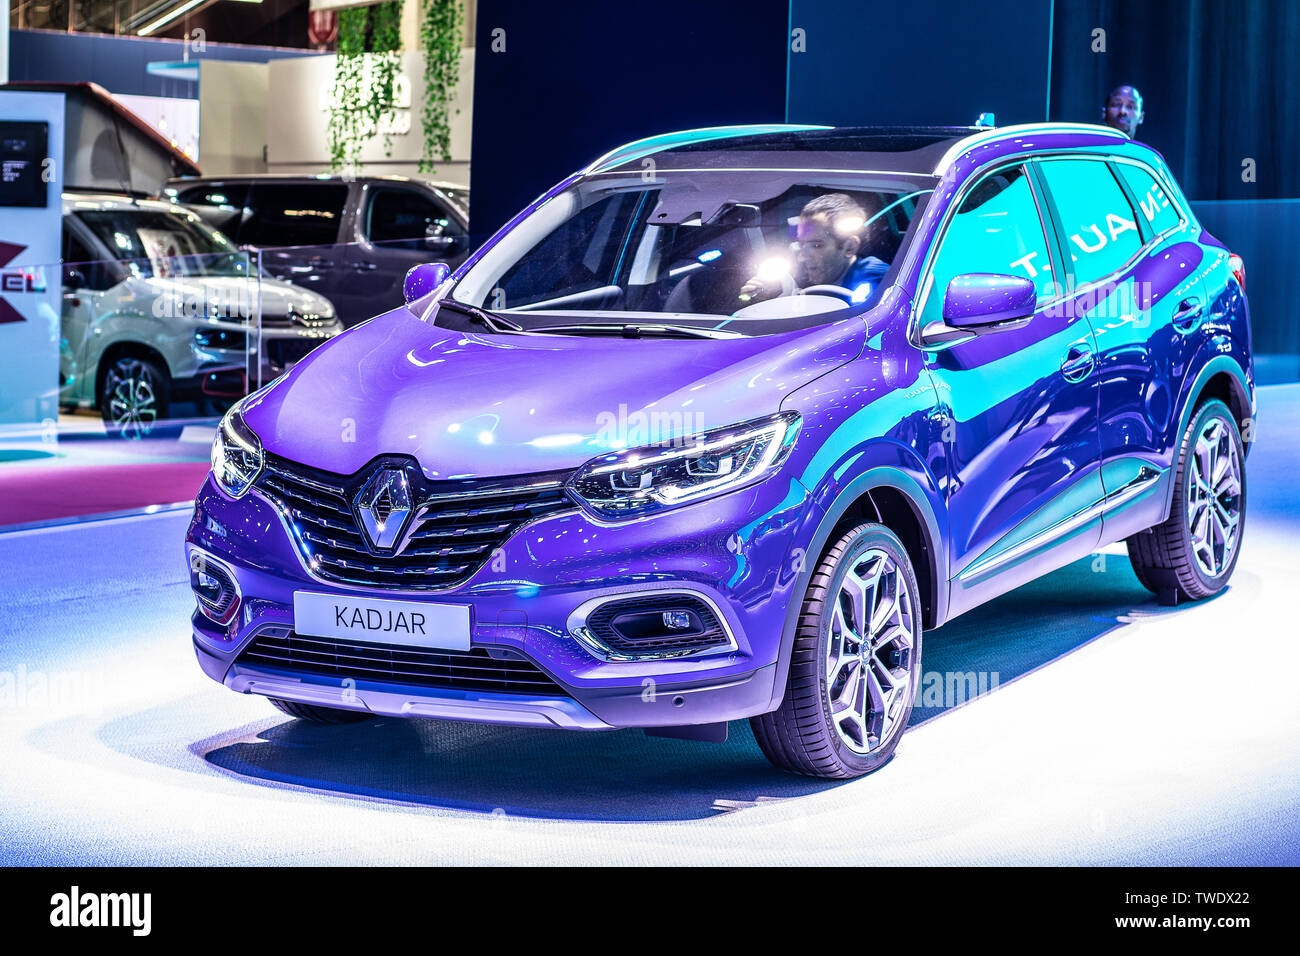 Paris France October 02 2018 Renault Kadjar At Mondial Paris Motor Show 1st Gen Facelift Cmf Cd Platform Suv Produced By Renault Stock Photo Alamy